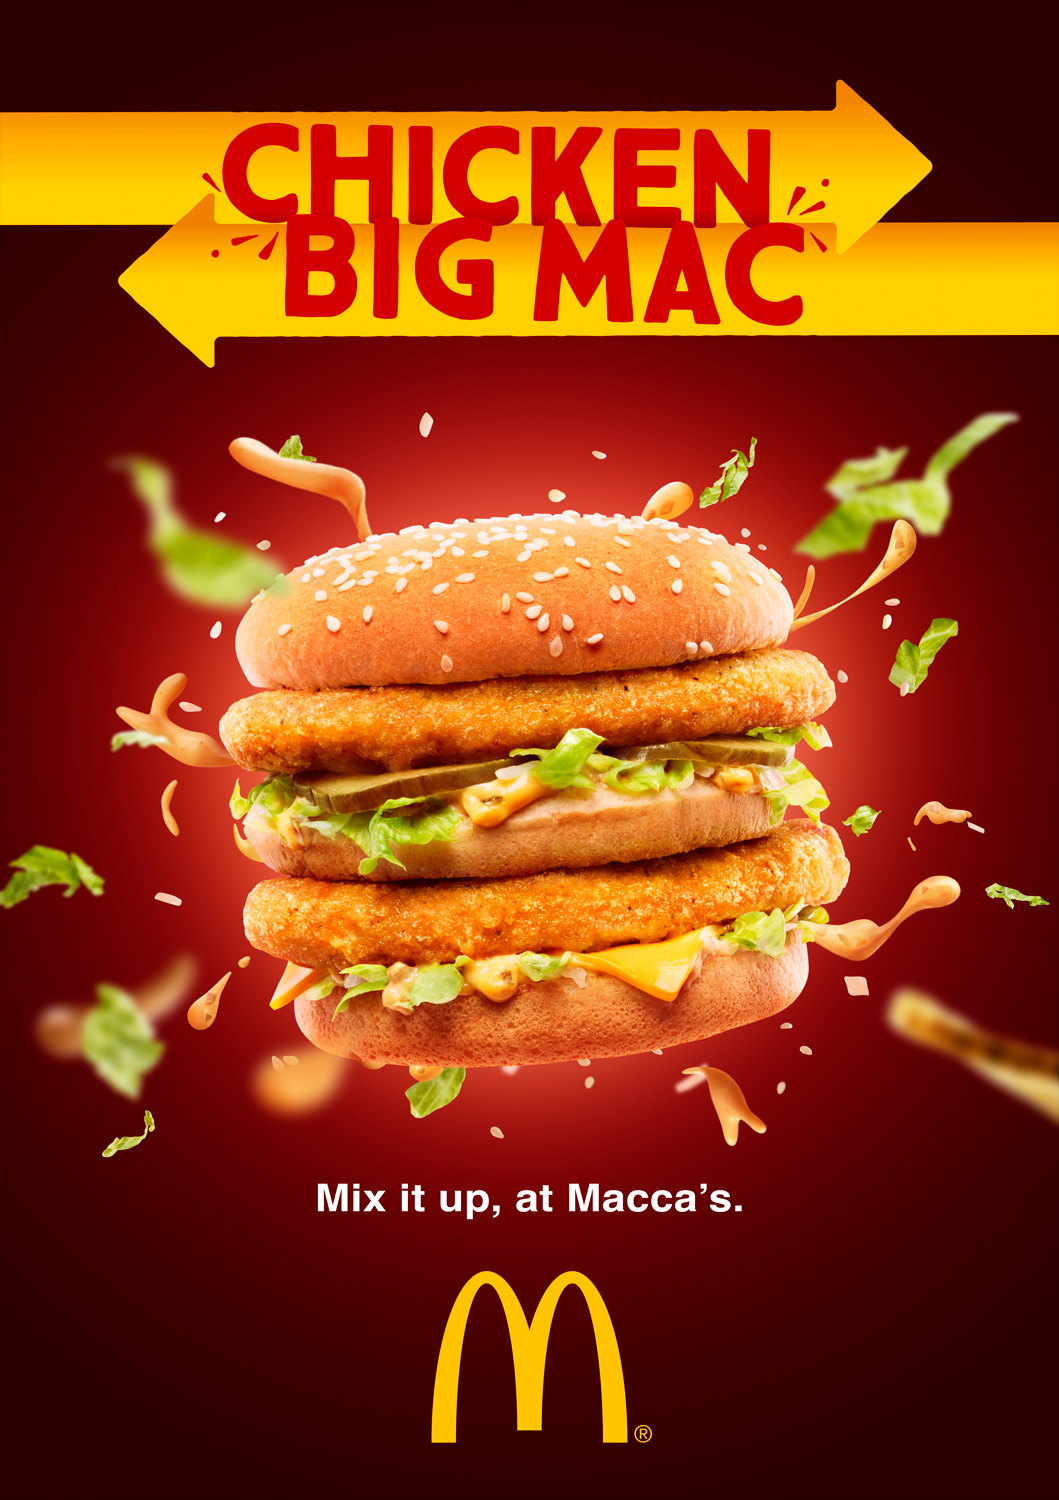 MCDONALDS-CHICKEN-BIG-MAC-LOGO-STEPHEN-STEWART.jpg